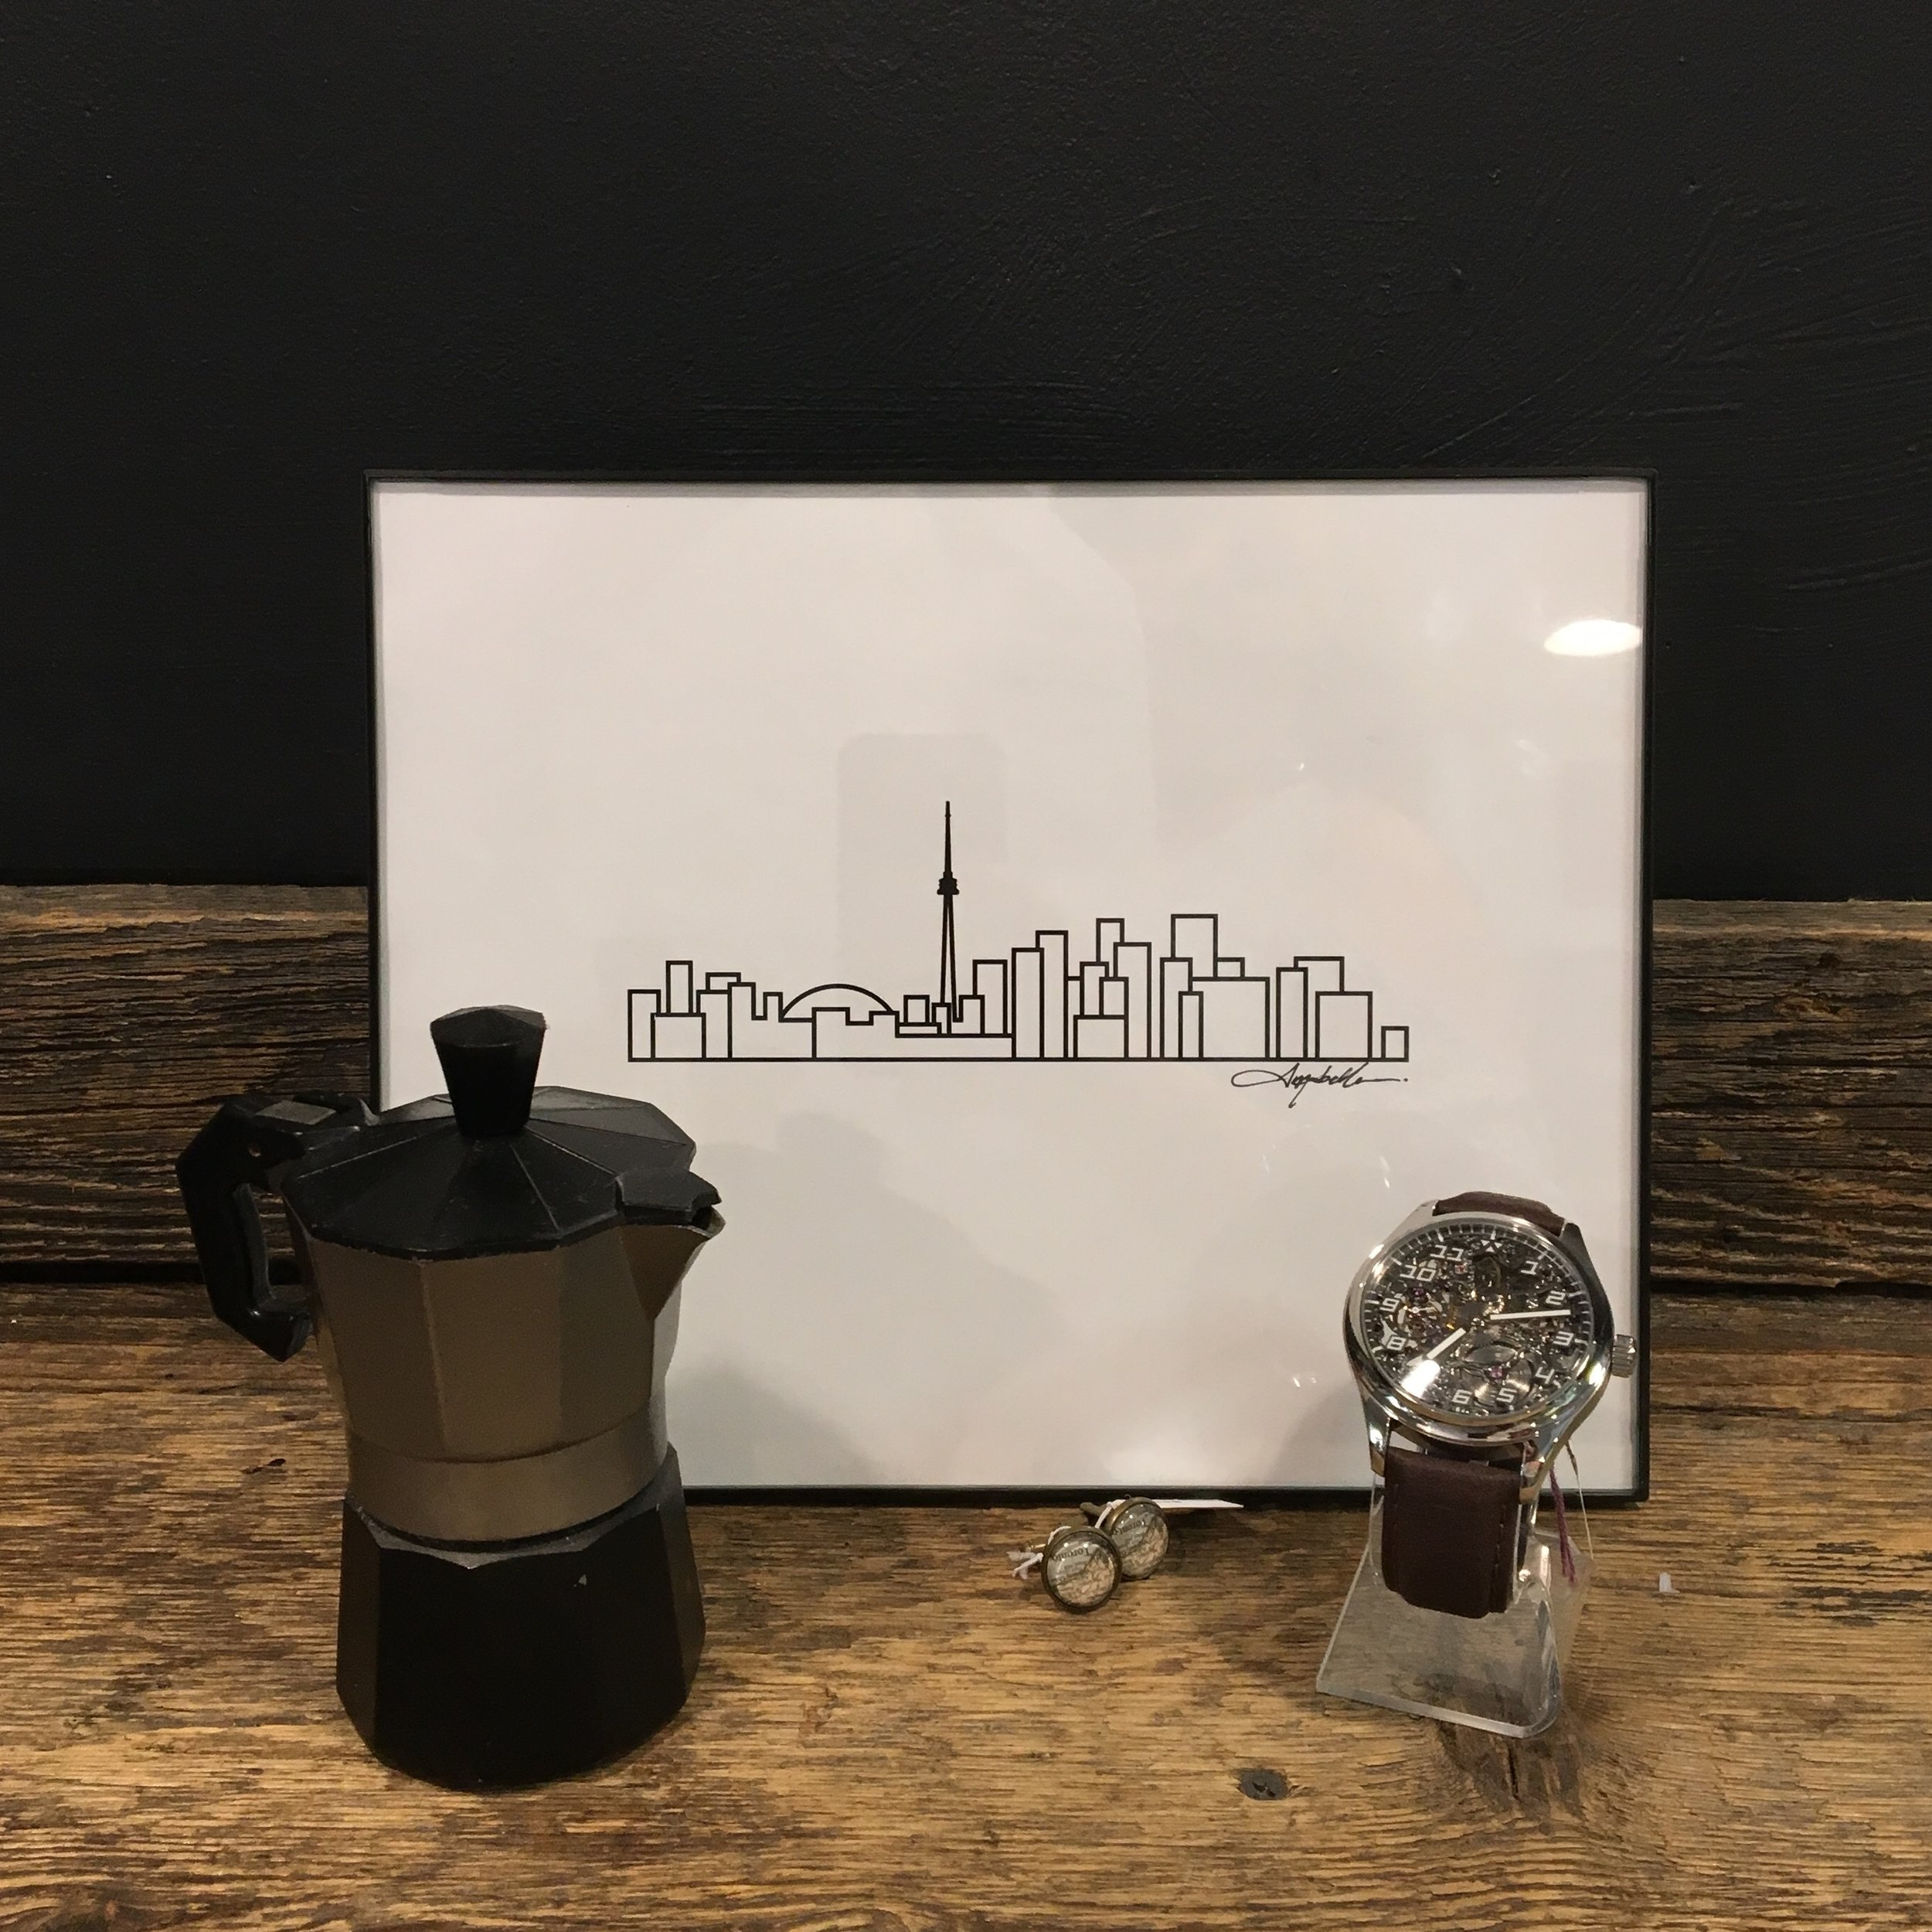 Print by  Ave Mariabell Designs  • Coffeemaker via  Refined Finds  • Cufflinks by  Lisa Young Designs  • Watch by  Wilk Watchworks